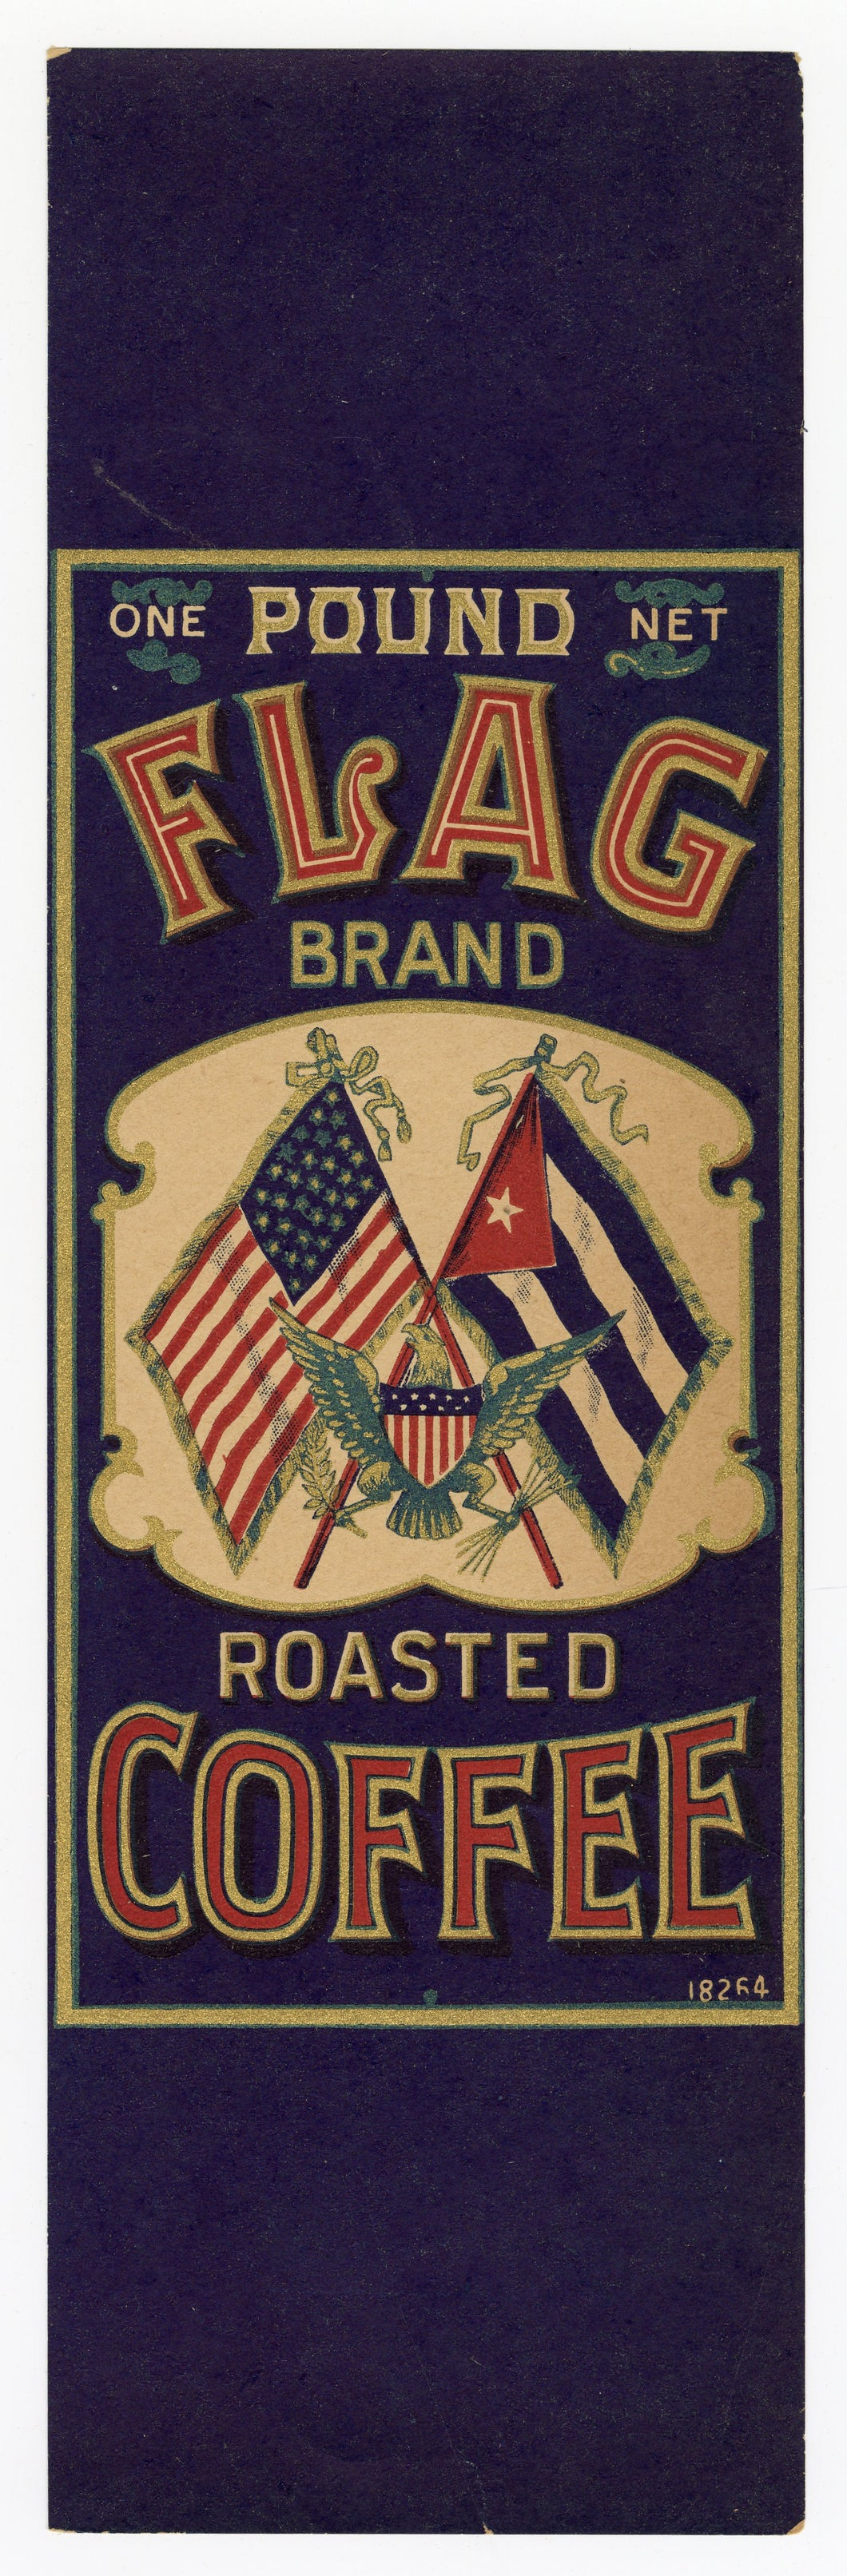 Vintage, Unused FLAG Brand Roasted Coffee Can Label, American, Patriotic